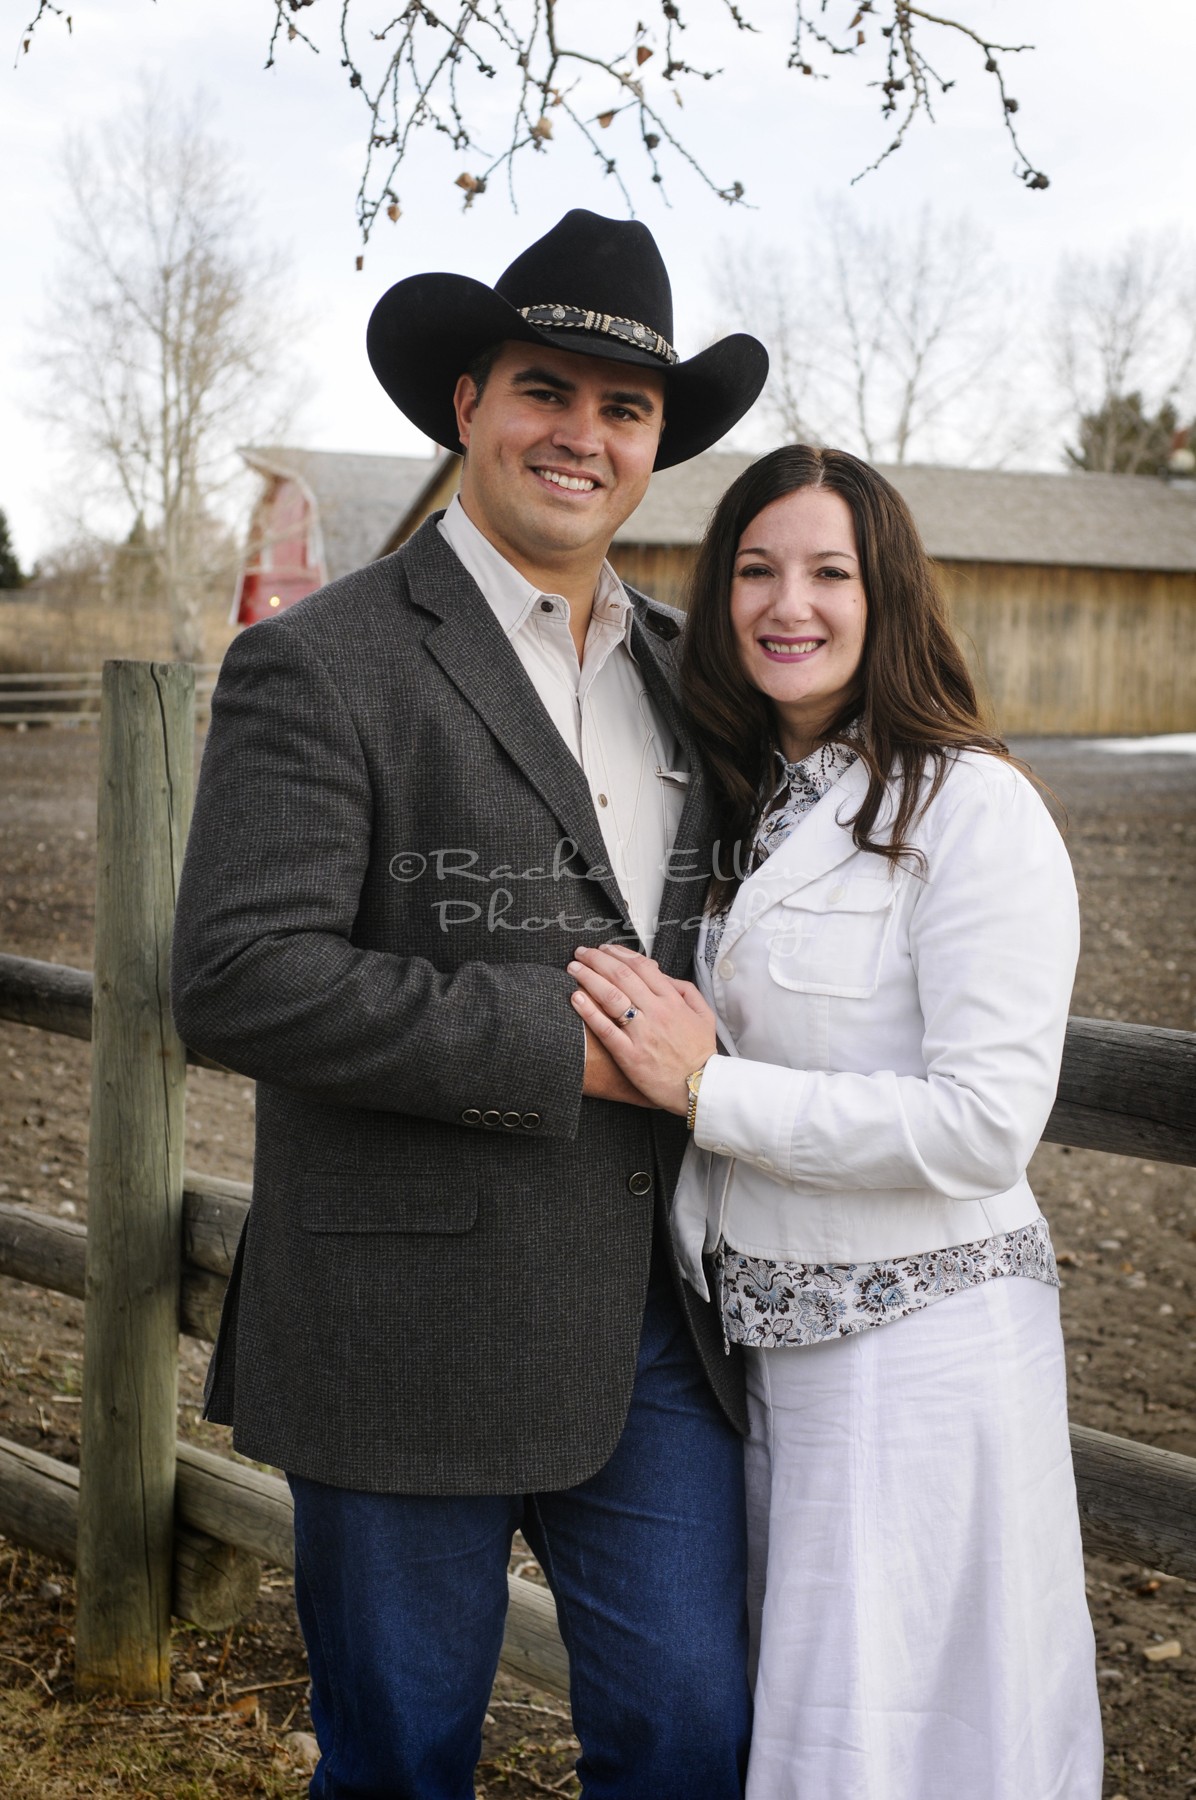 Wedding Portrait at Heritage Park